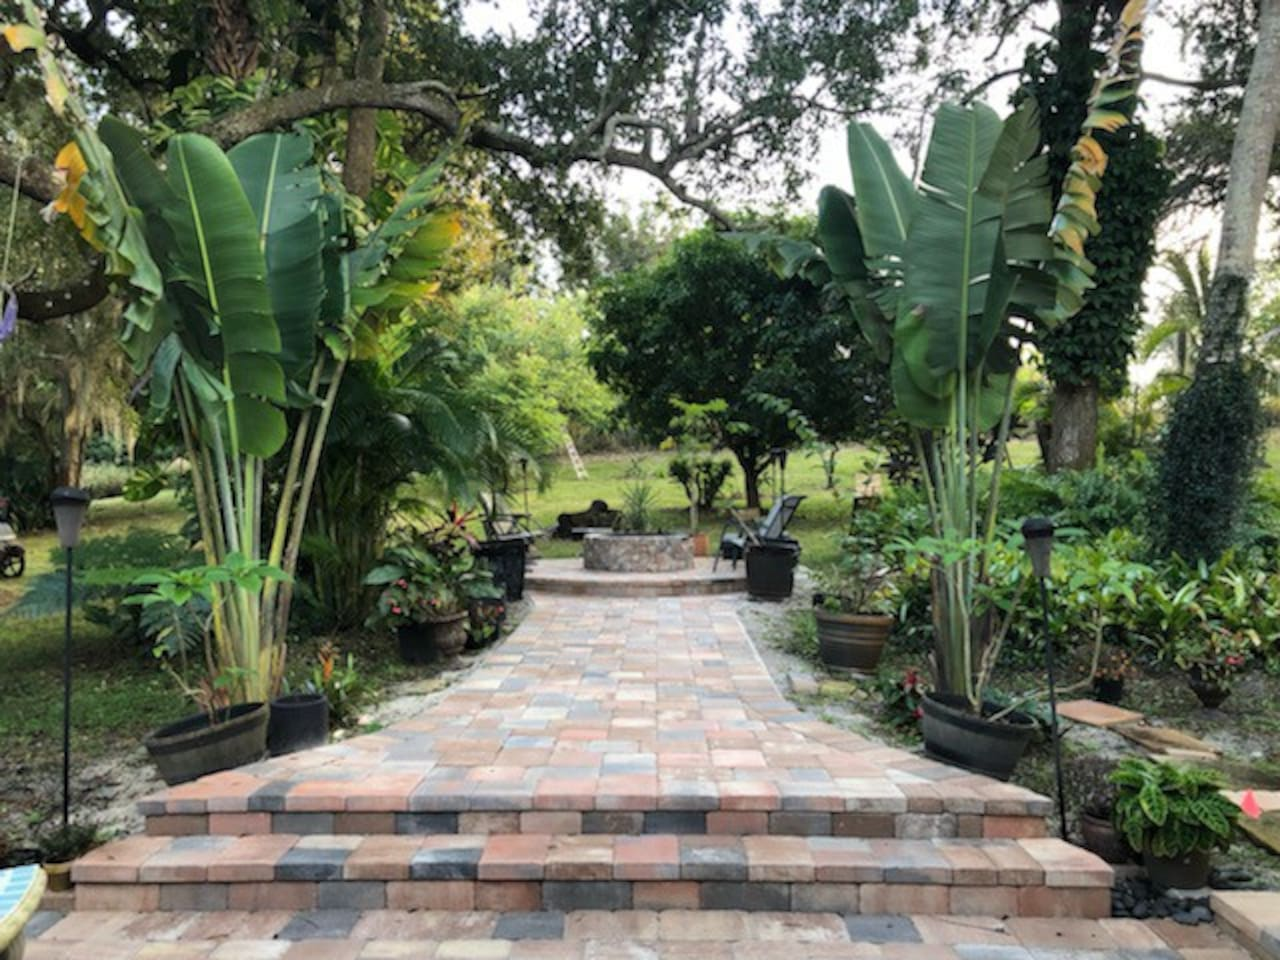 NEW, AMAZING Outdoor Living Space! BEAUTIFUL multi-level paver patio with large Fire-pit and grill for friends & family evenings surrounded by nature.